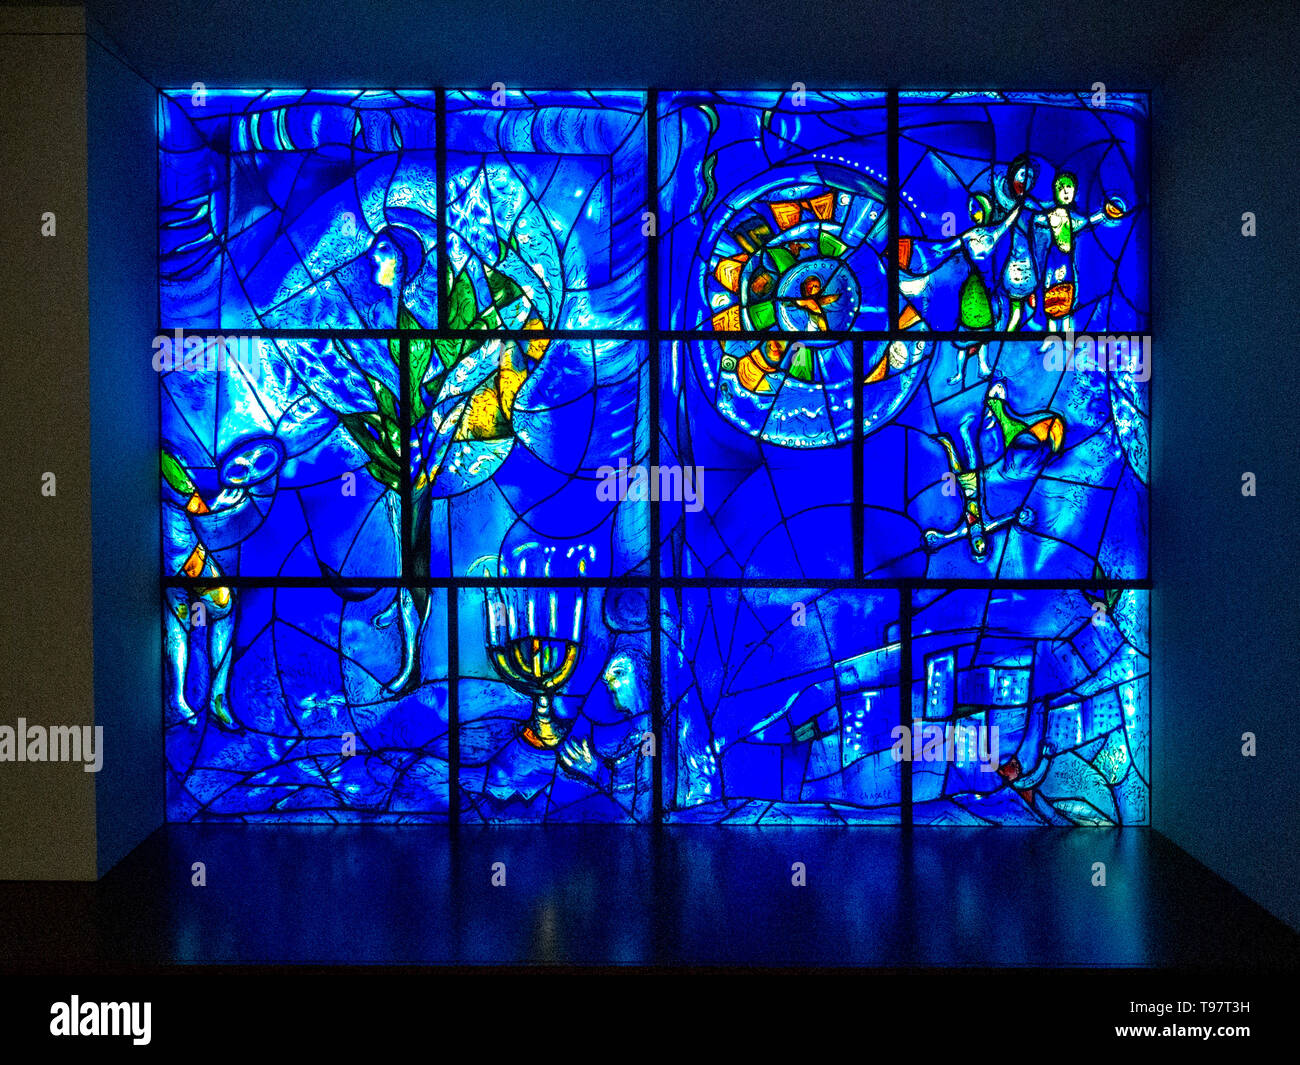 On display at the Art Institute of Chicago, artist Marc Chagall's stained glass 'American Windows' depict the arts,American history and the Chicago skyline as a celebration of the American bicentennial. - Stock Image